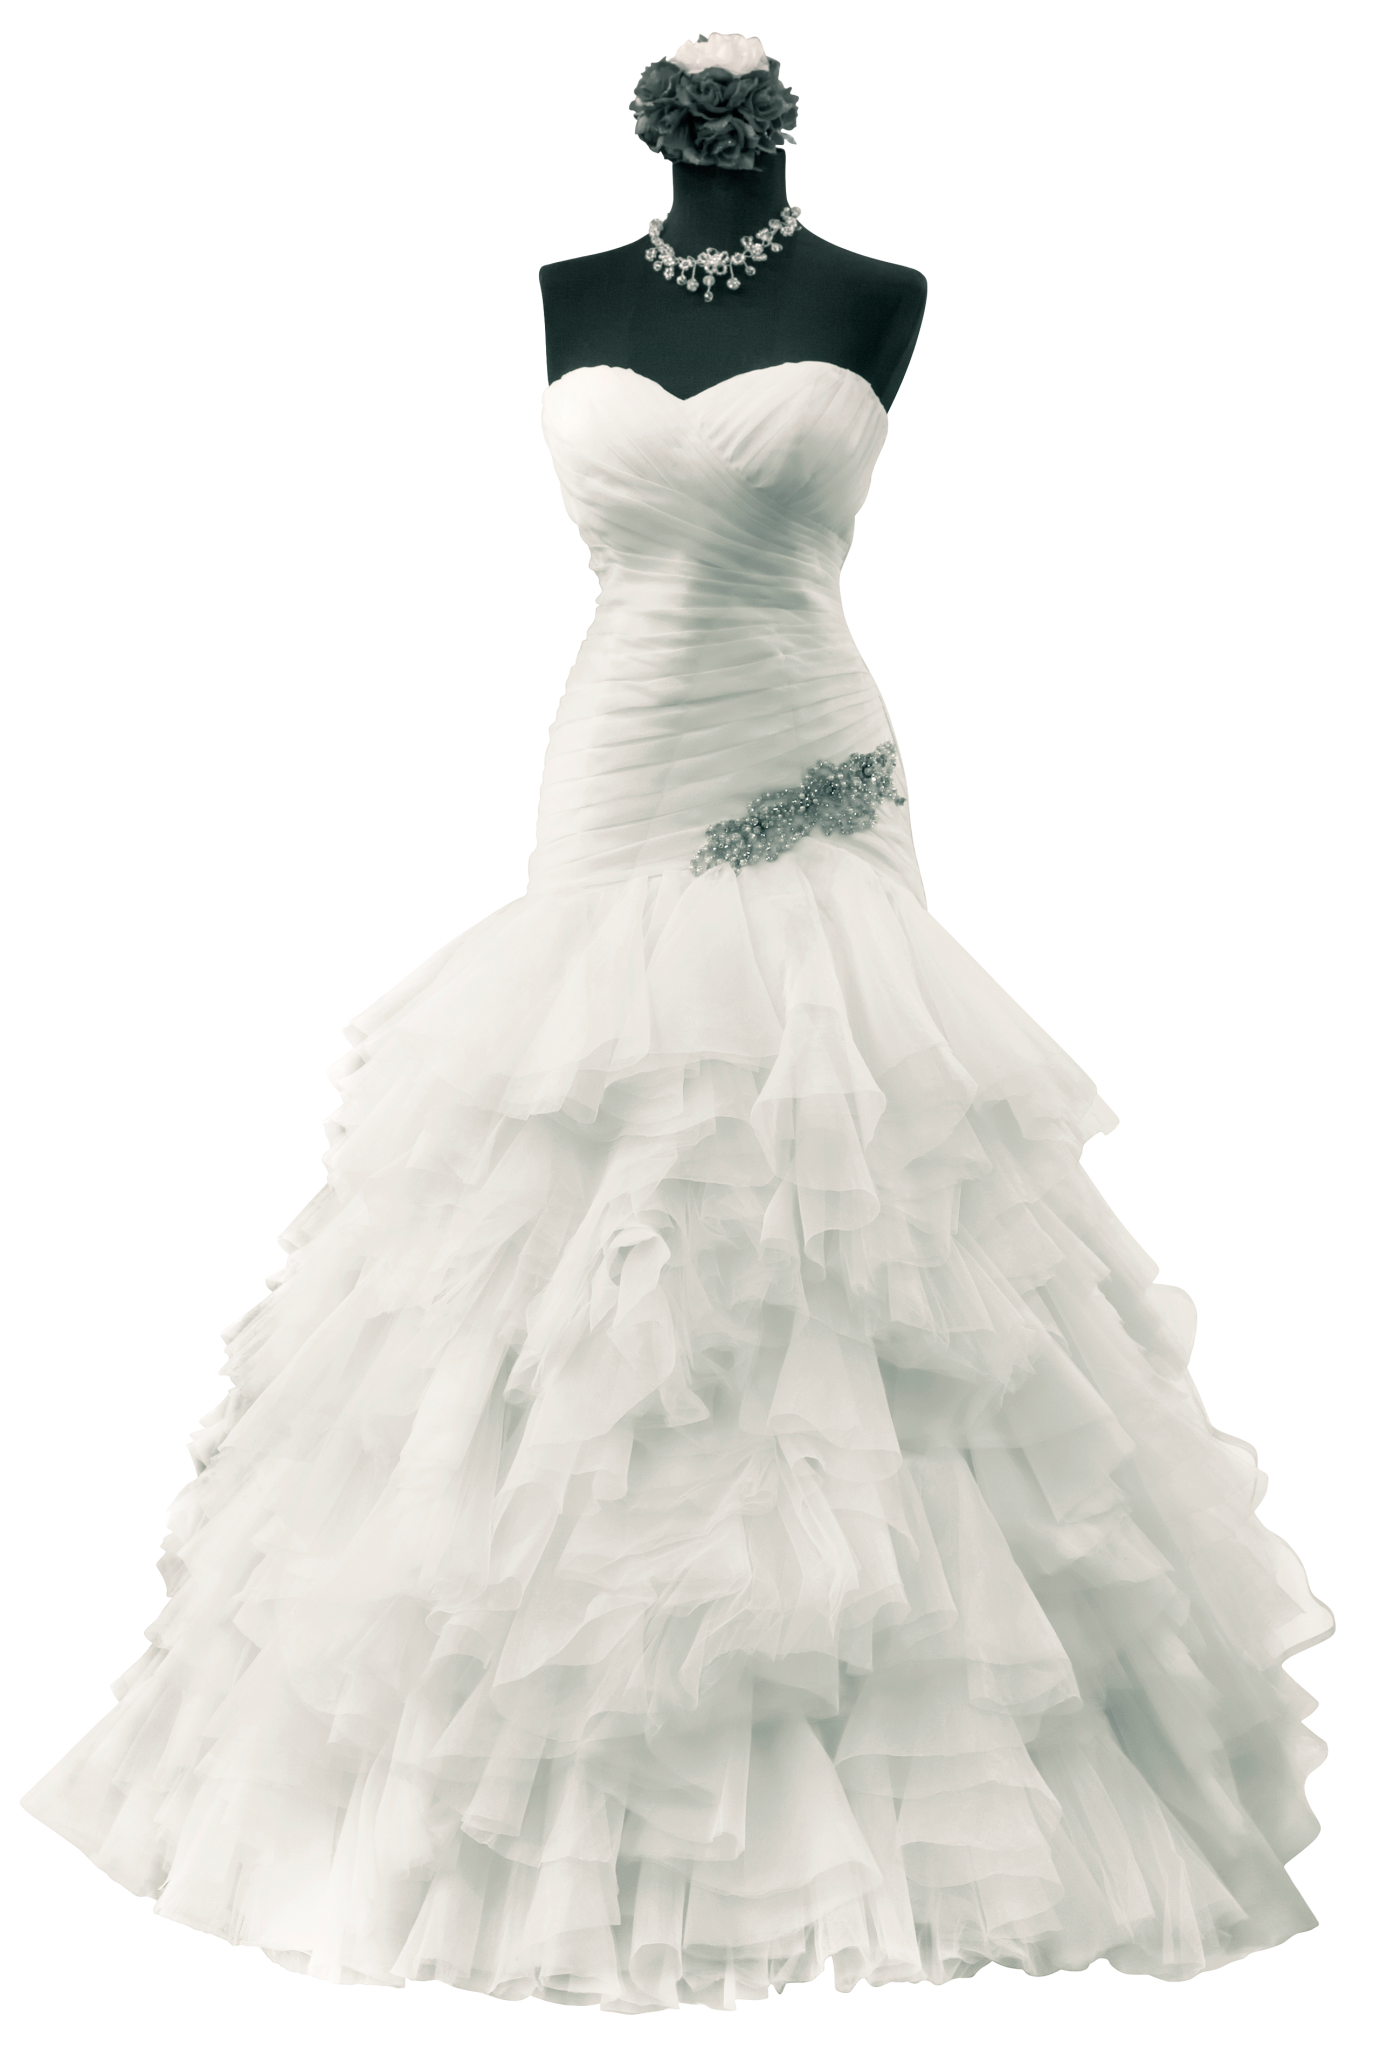 Bridal gown clean and press dry cleaning laundry for Dry clean wedding dress